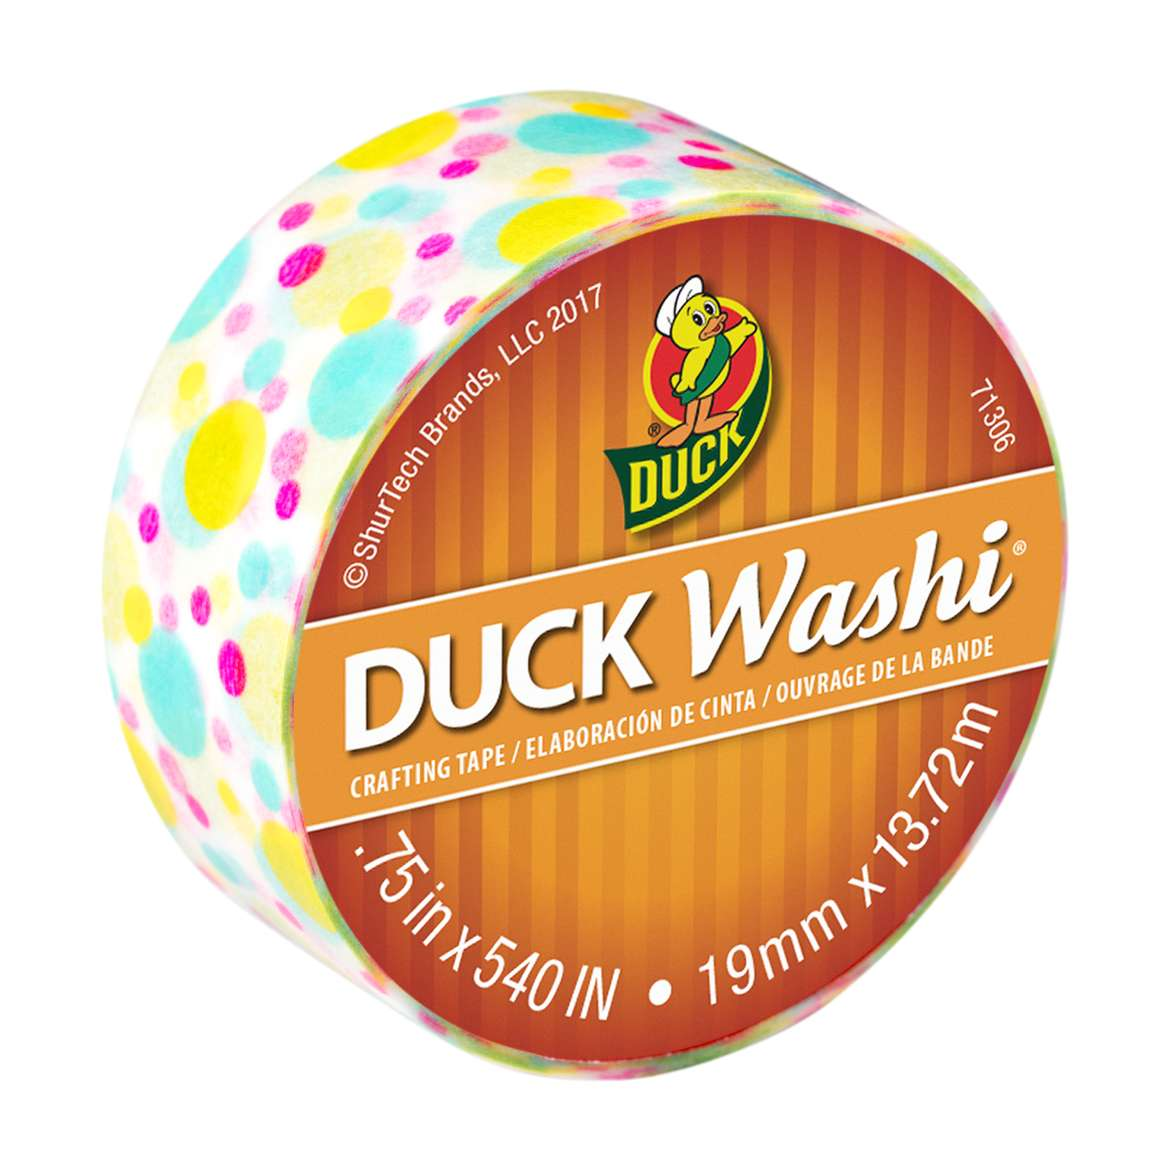 Duck Washi® Crafting Tape - Multi Dot, 0.75 in. X 15 yd. Image